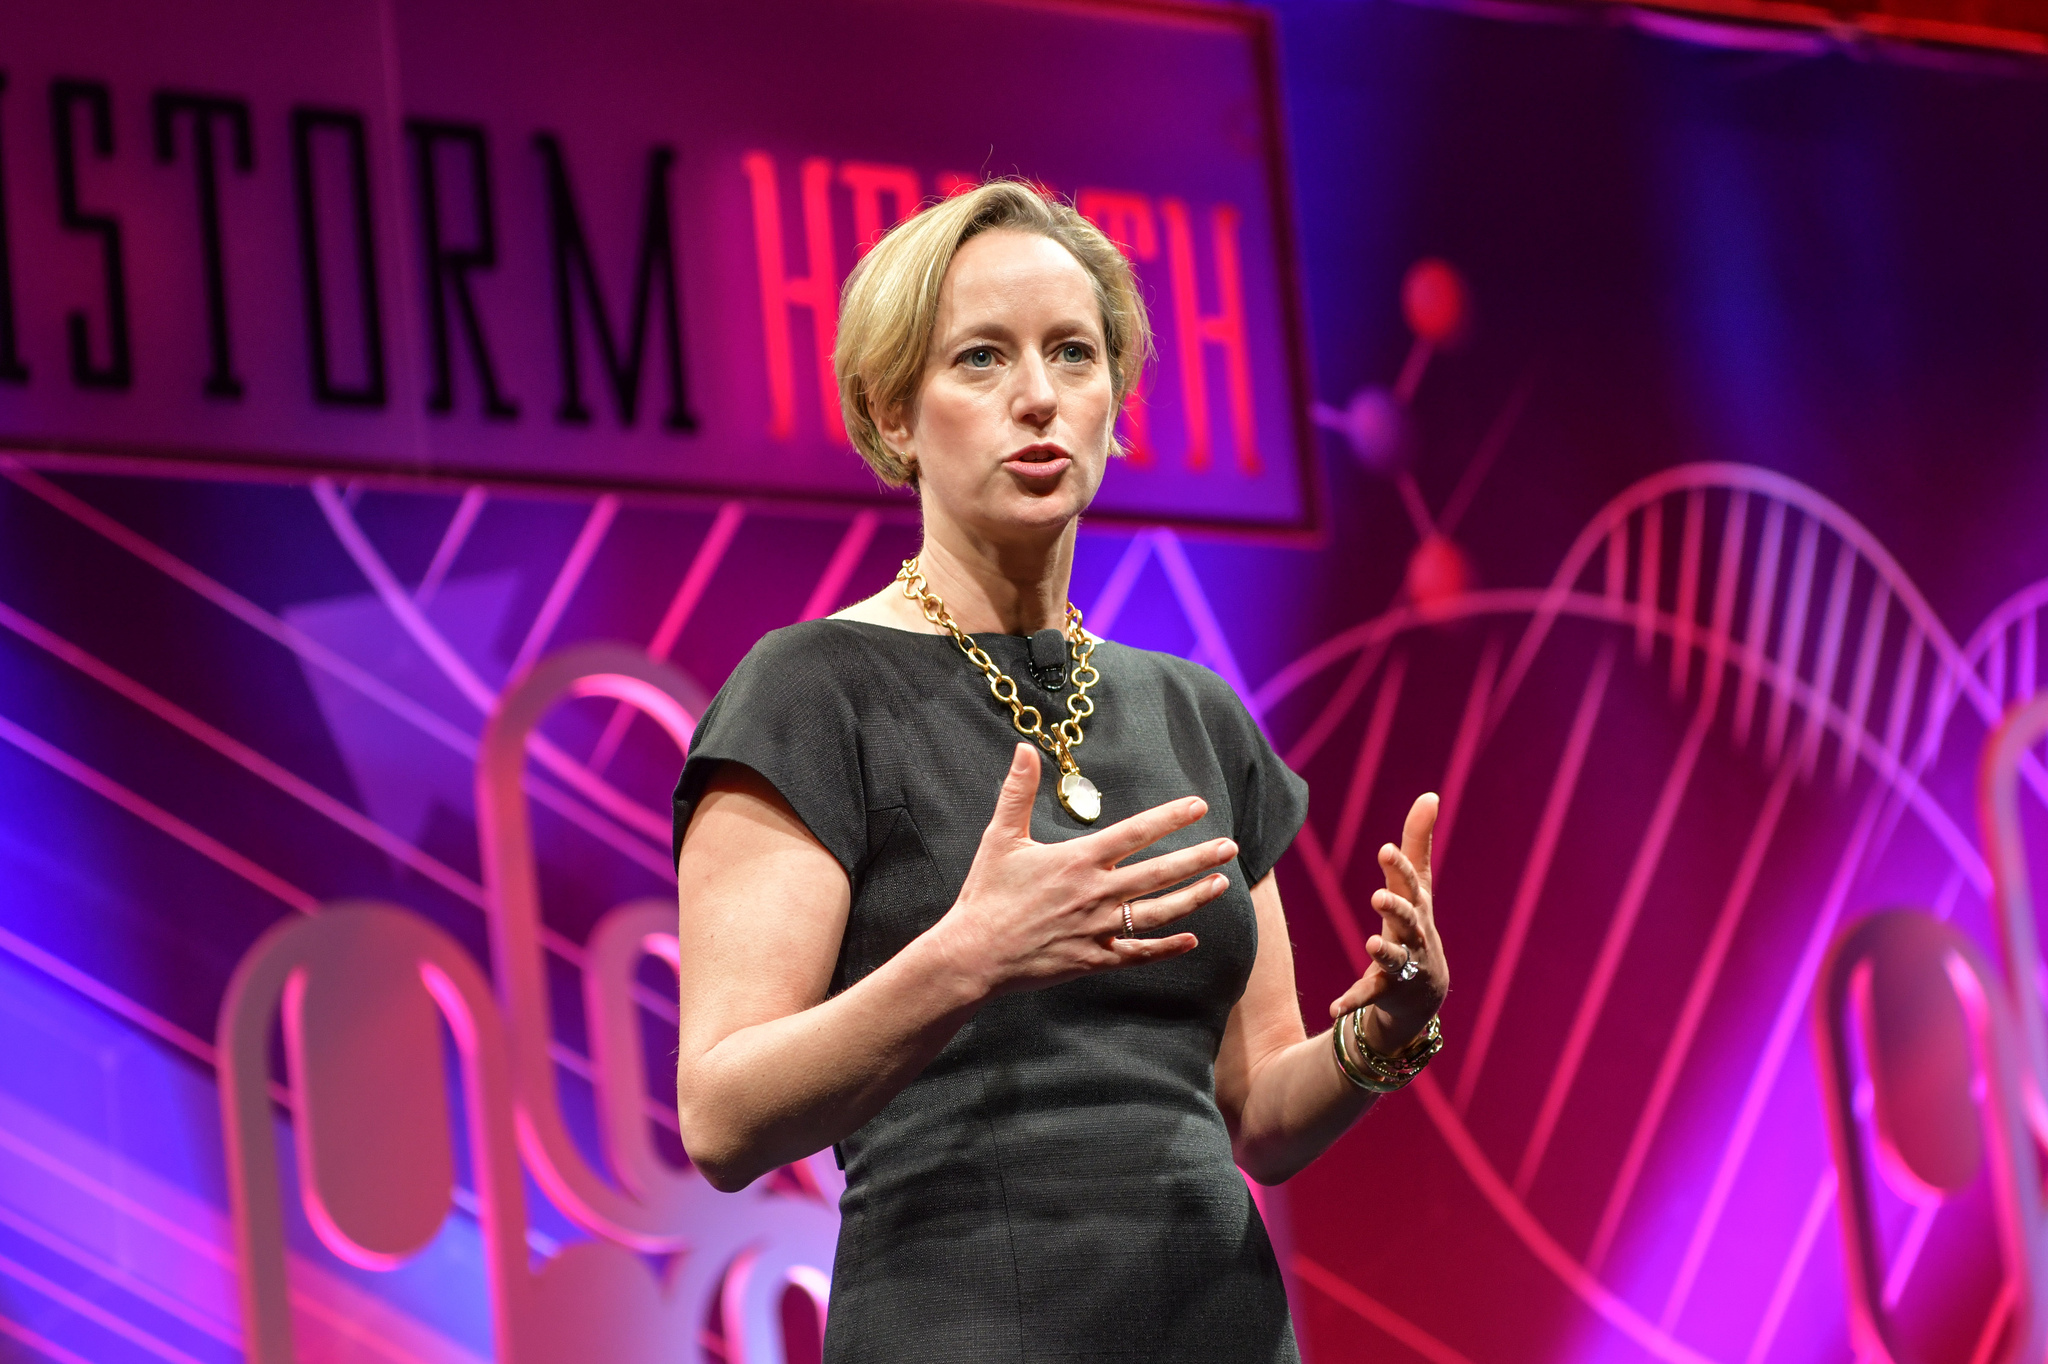 Psychologist and author Lisa Damour speaking at the 2019 Fortune Brainstorm Health conference in San Diego.